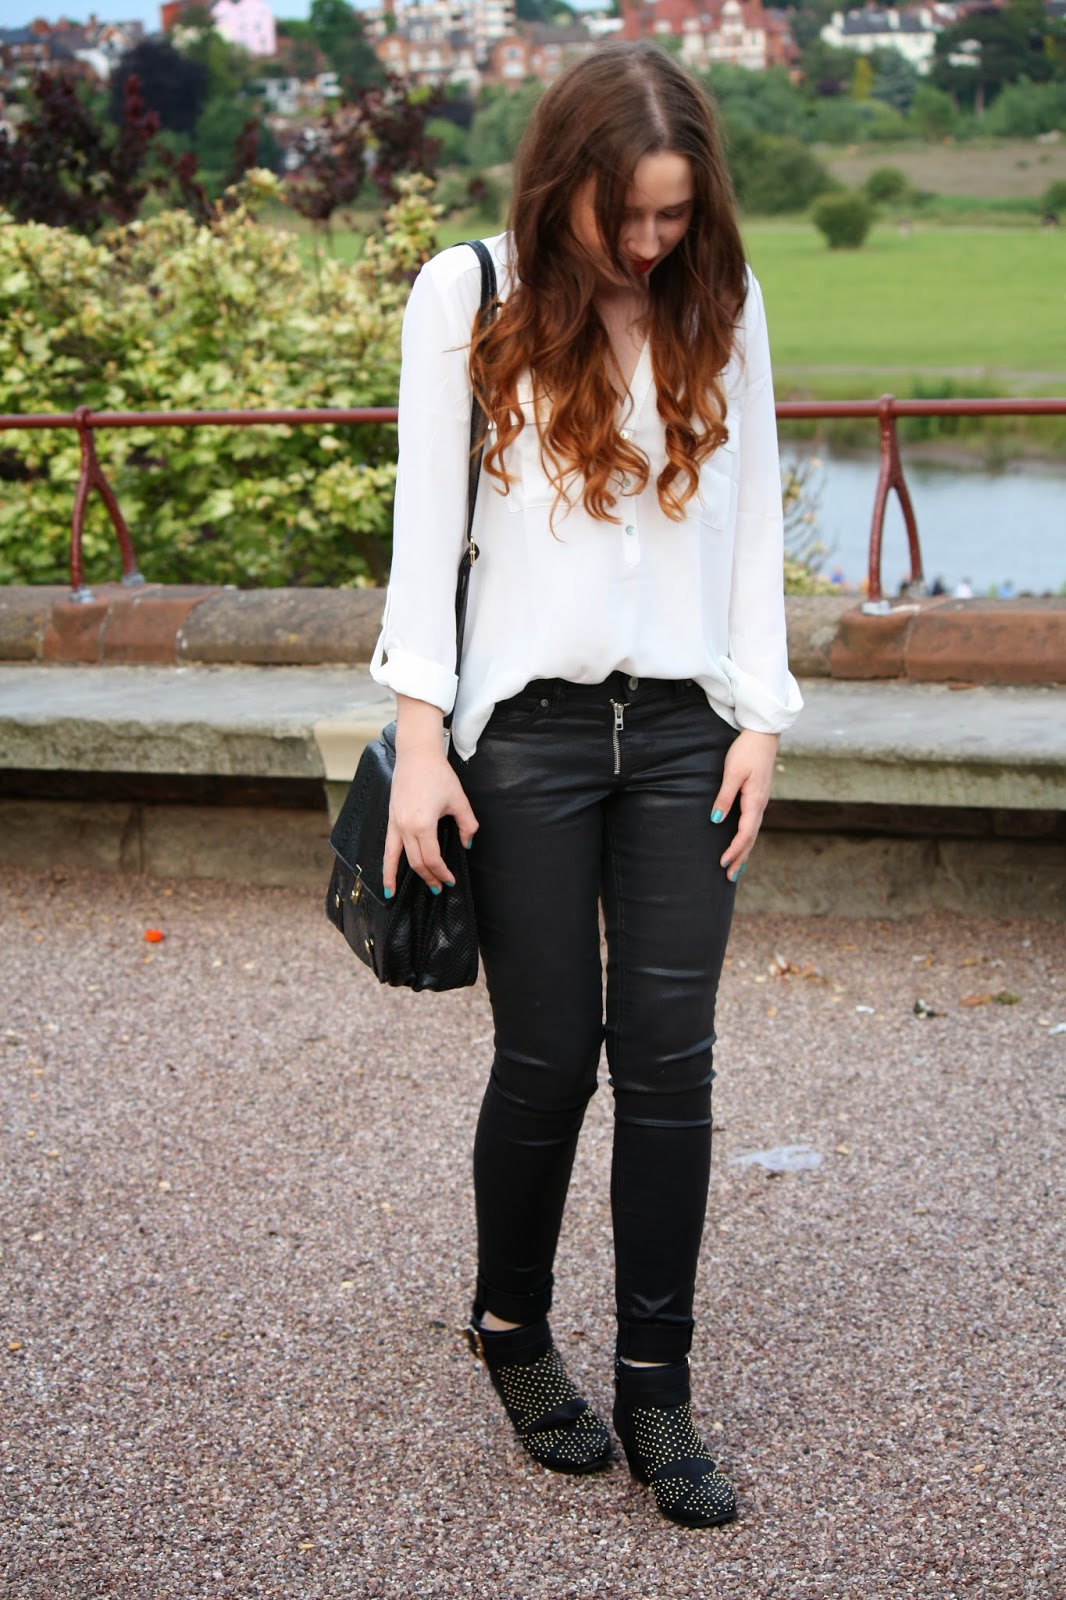 Forever 21 shirt, all saints jeans, forever 21 boots, front ootd photo